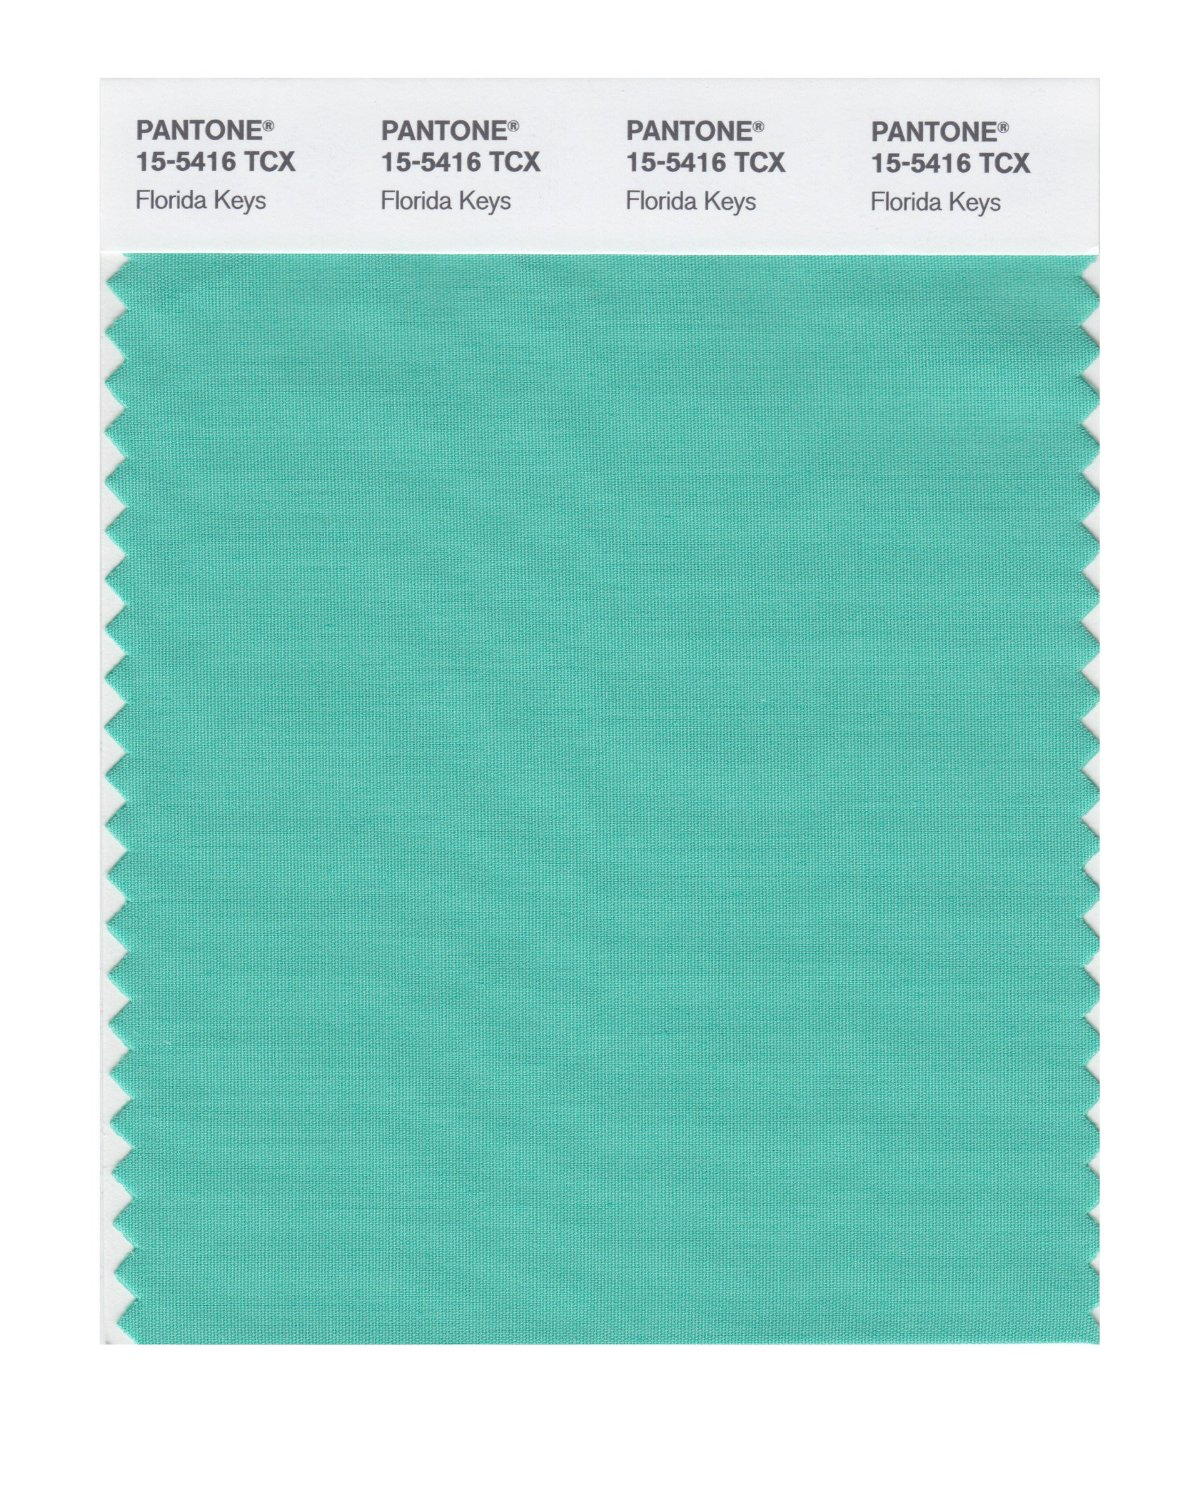 Pantone Smart Swatch 15-5416 Florida Keys